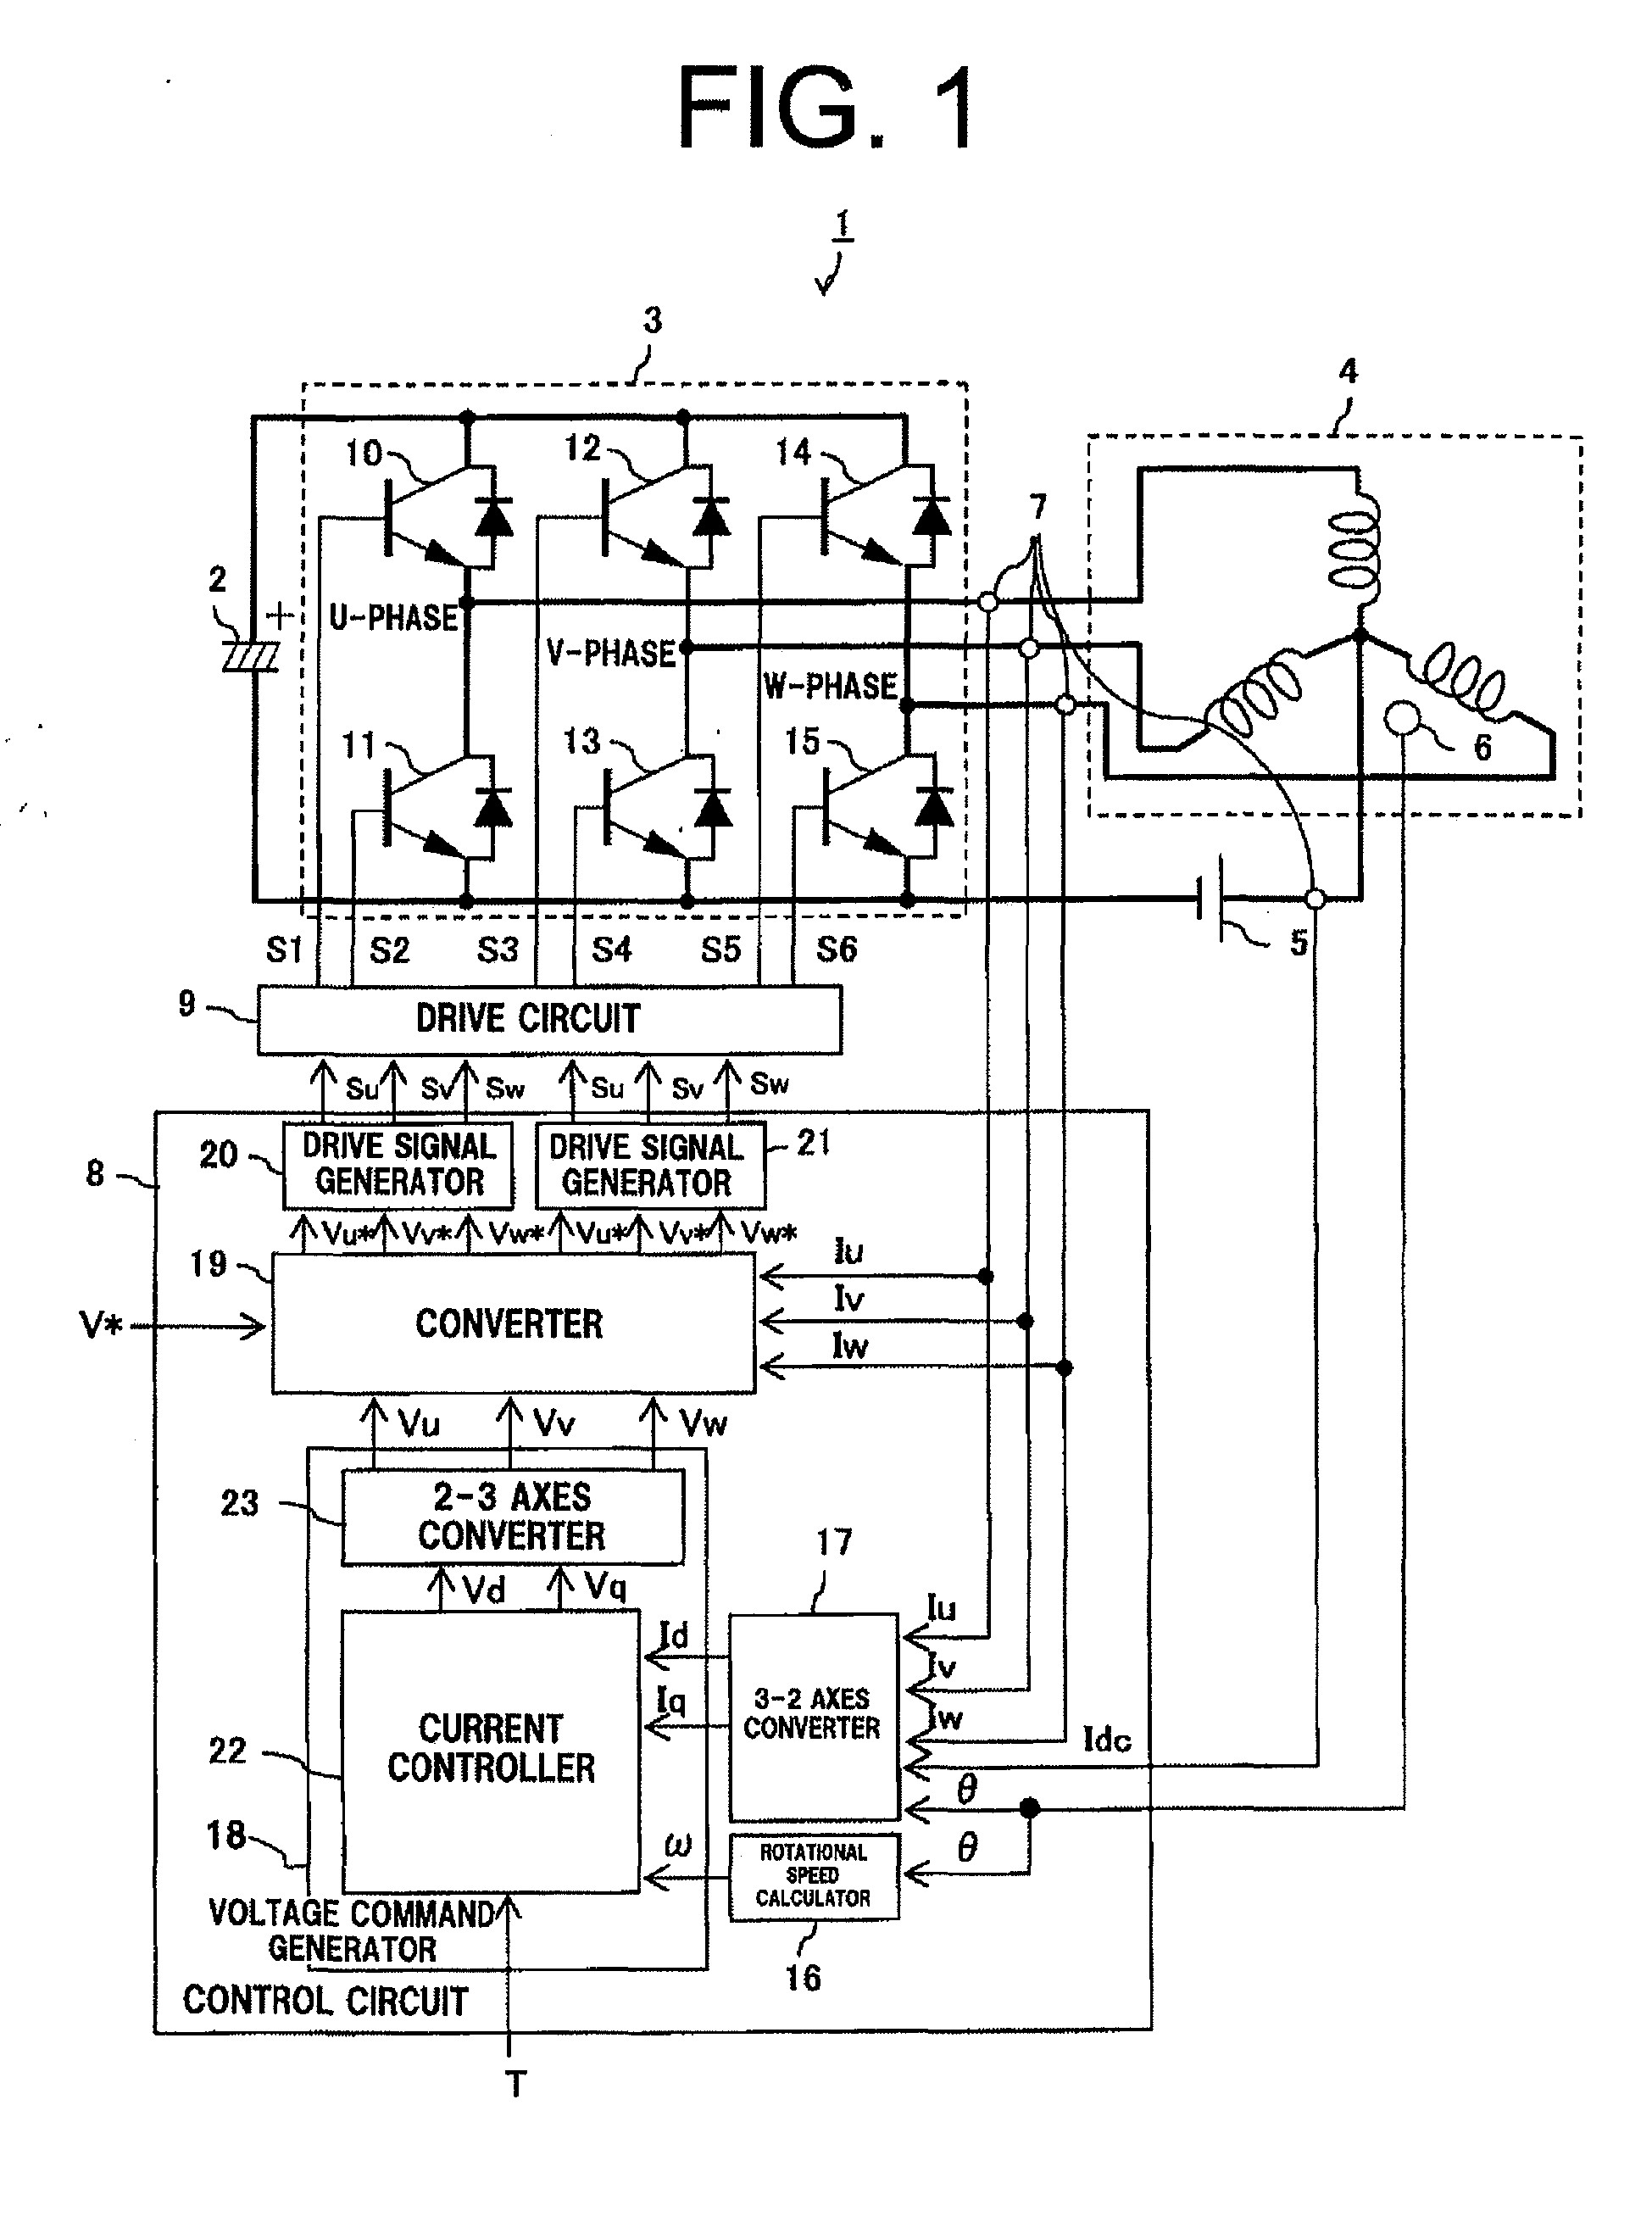 Three Phase Converter Wiring Diagram Three Phase Voltage Multiplier Reuk Co Uk Wind Turbine Wiring Of Three Phase Converter Wiring Diagram